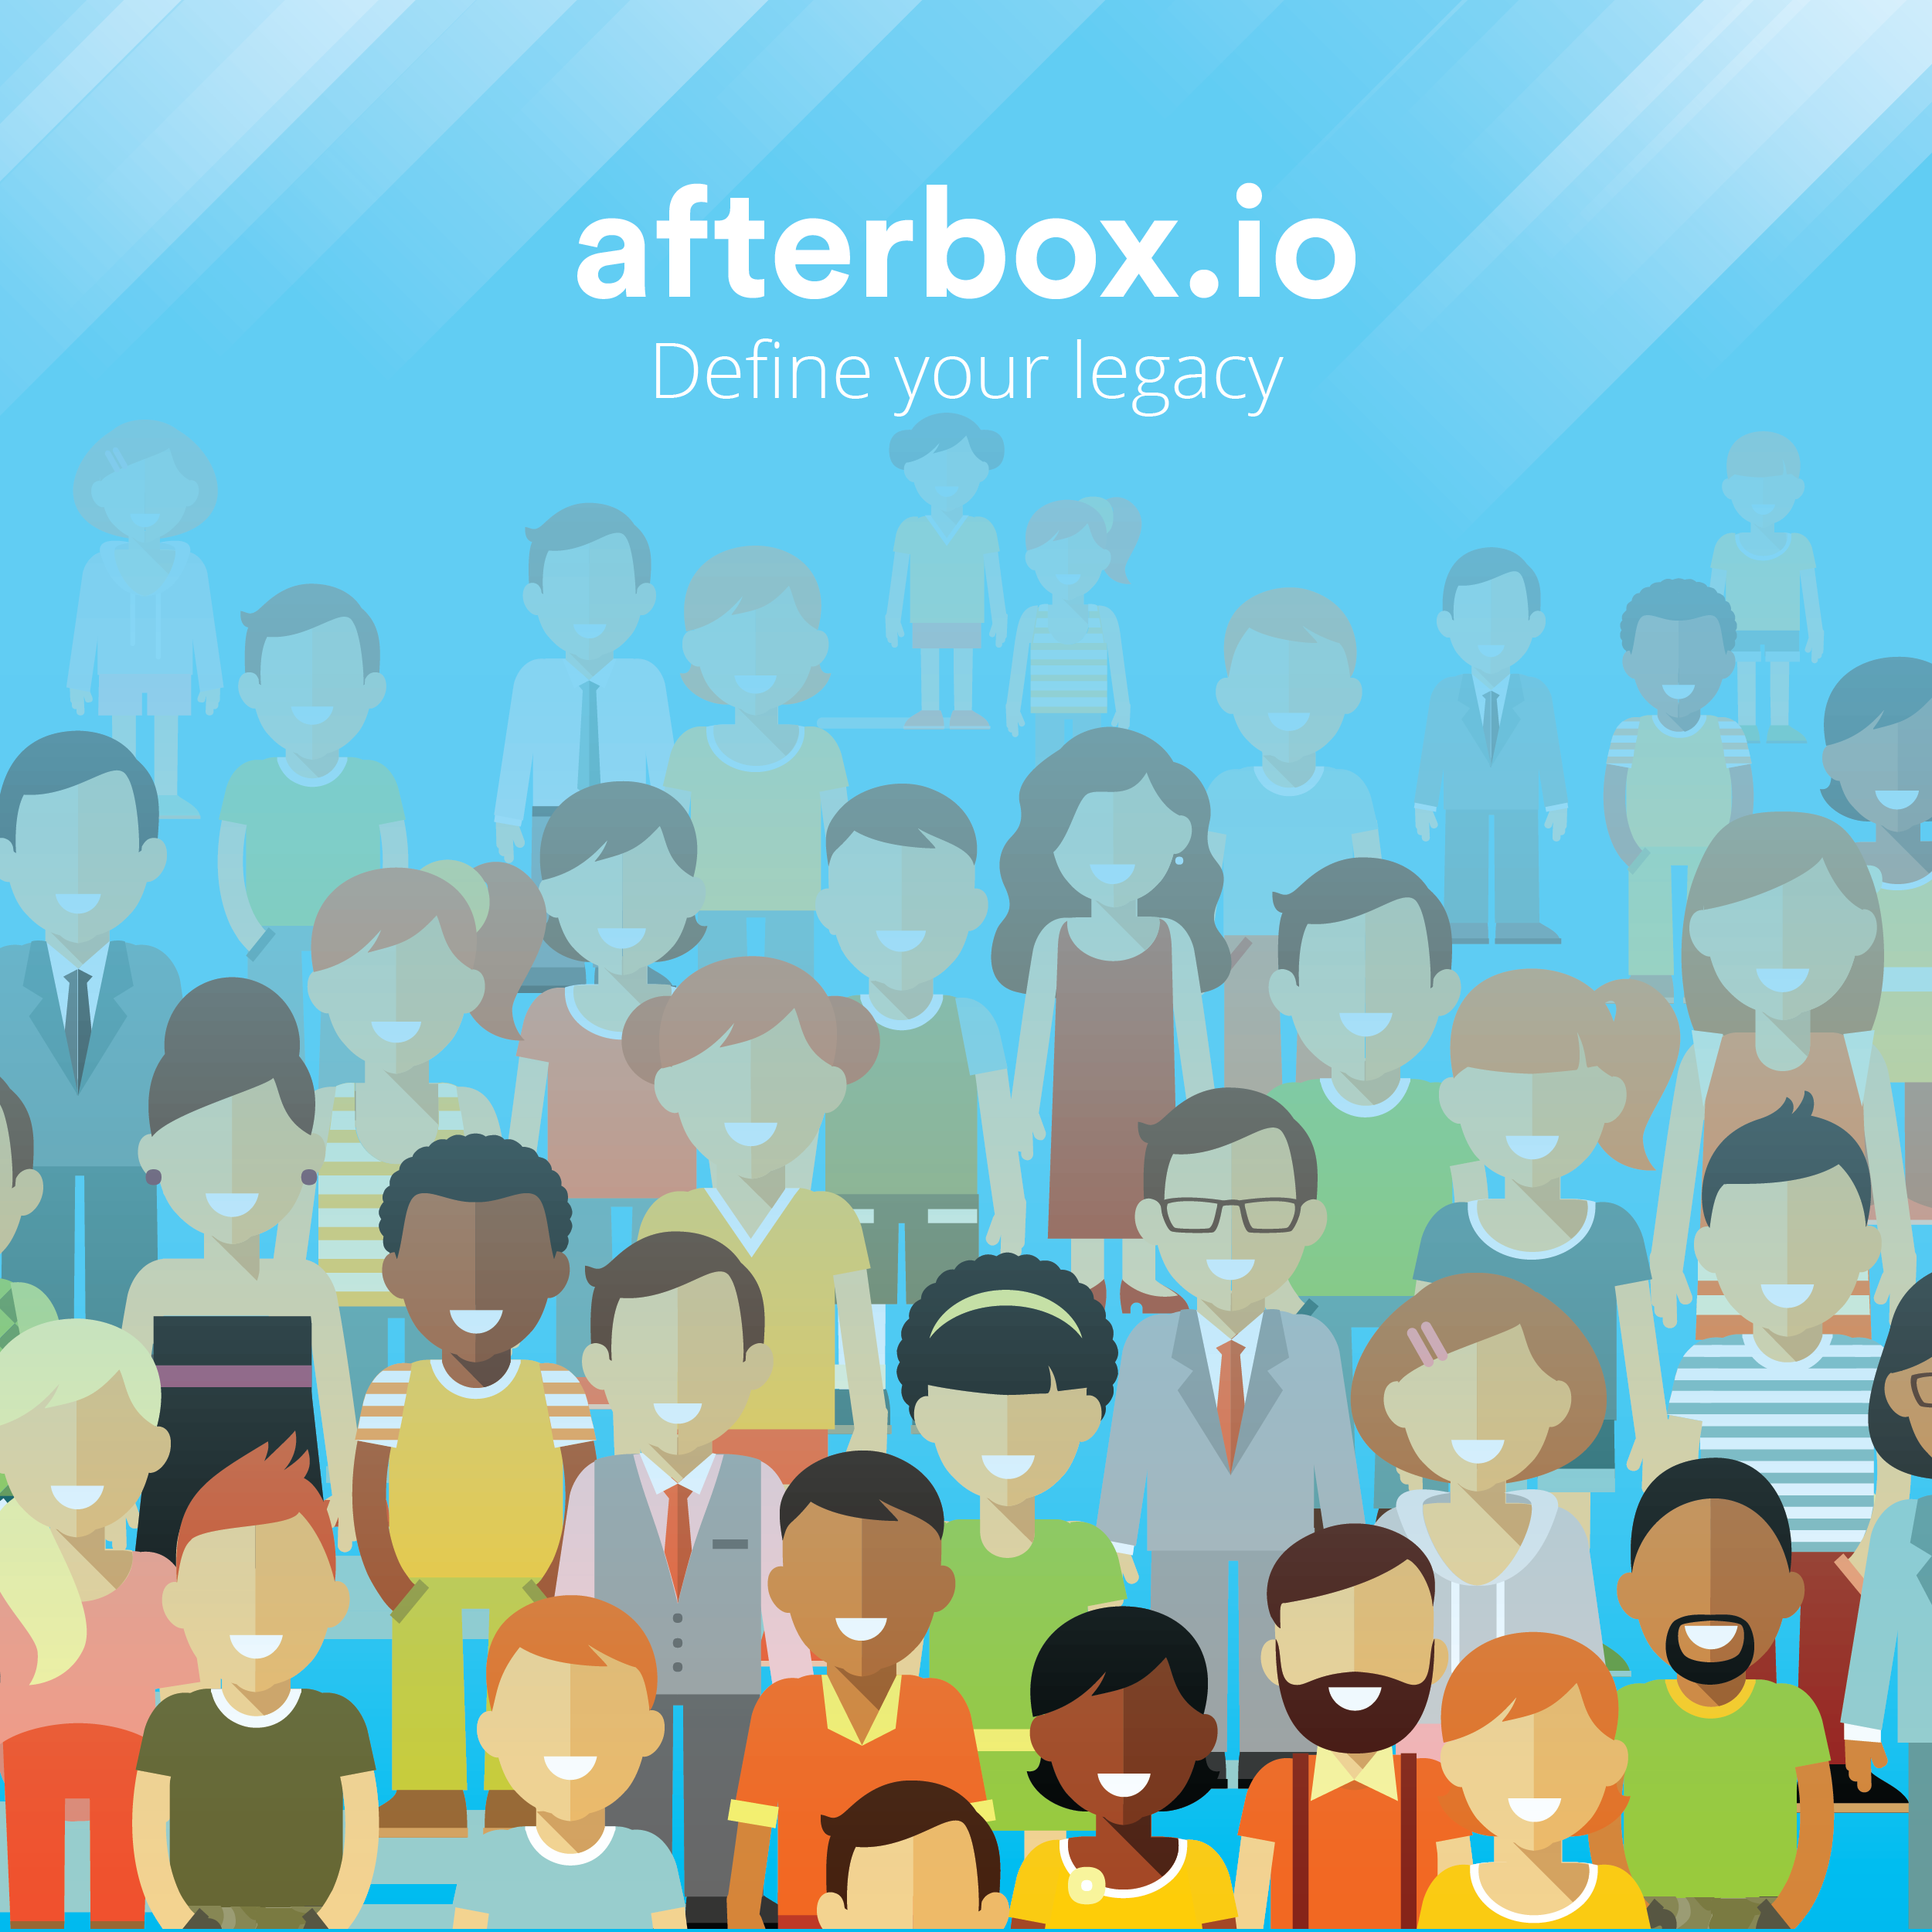 Check out the official Afterbox website at http://afterbox.io